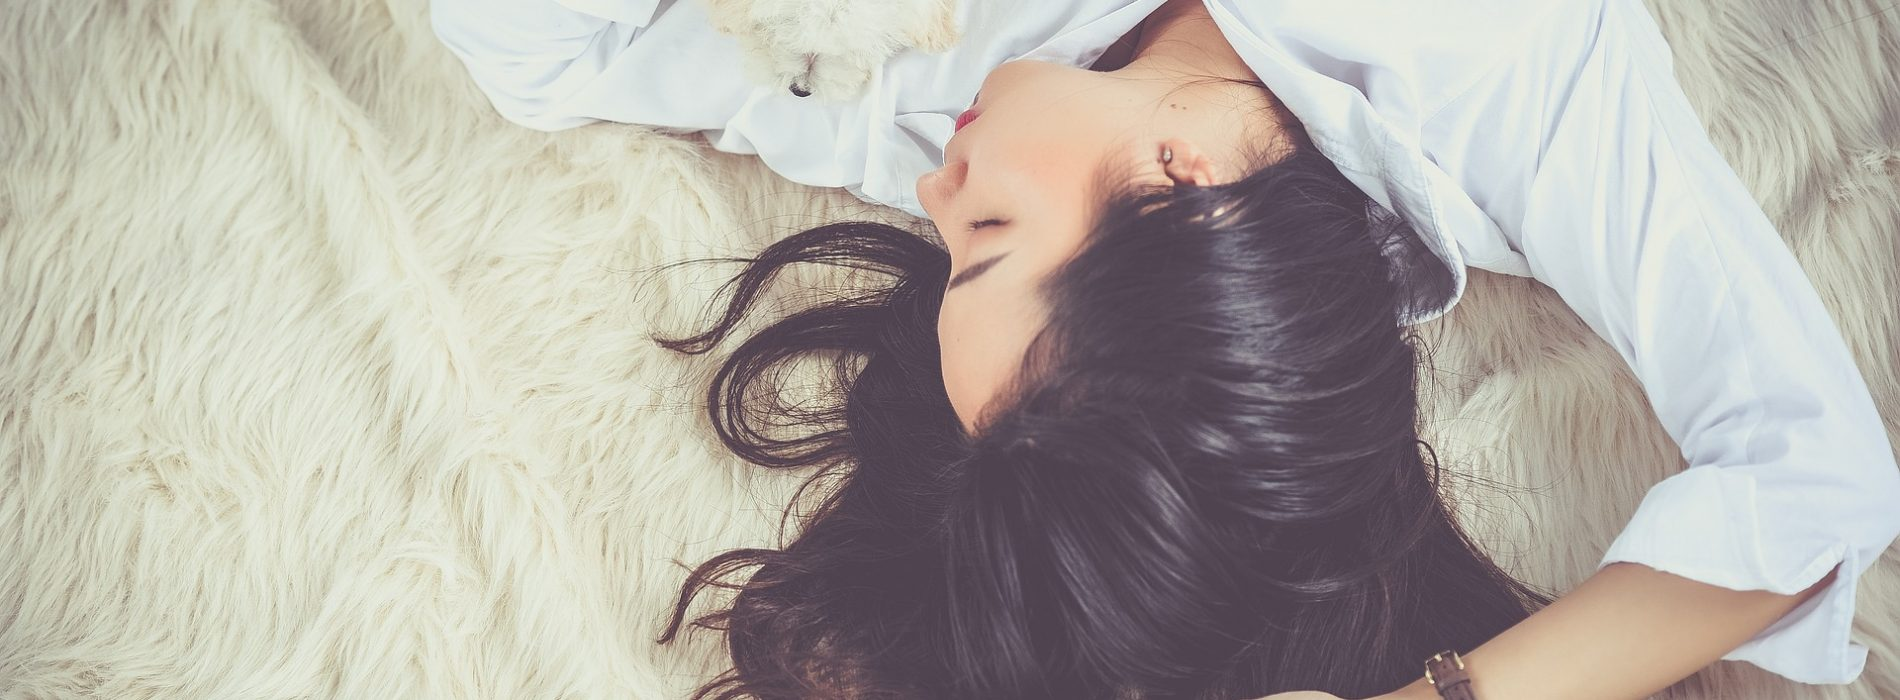 Sleep Problems after Breakup & How to Fix Them